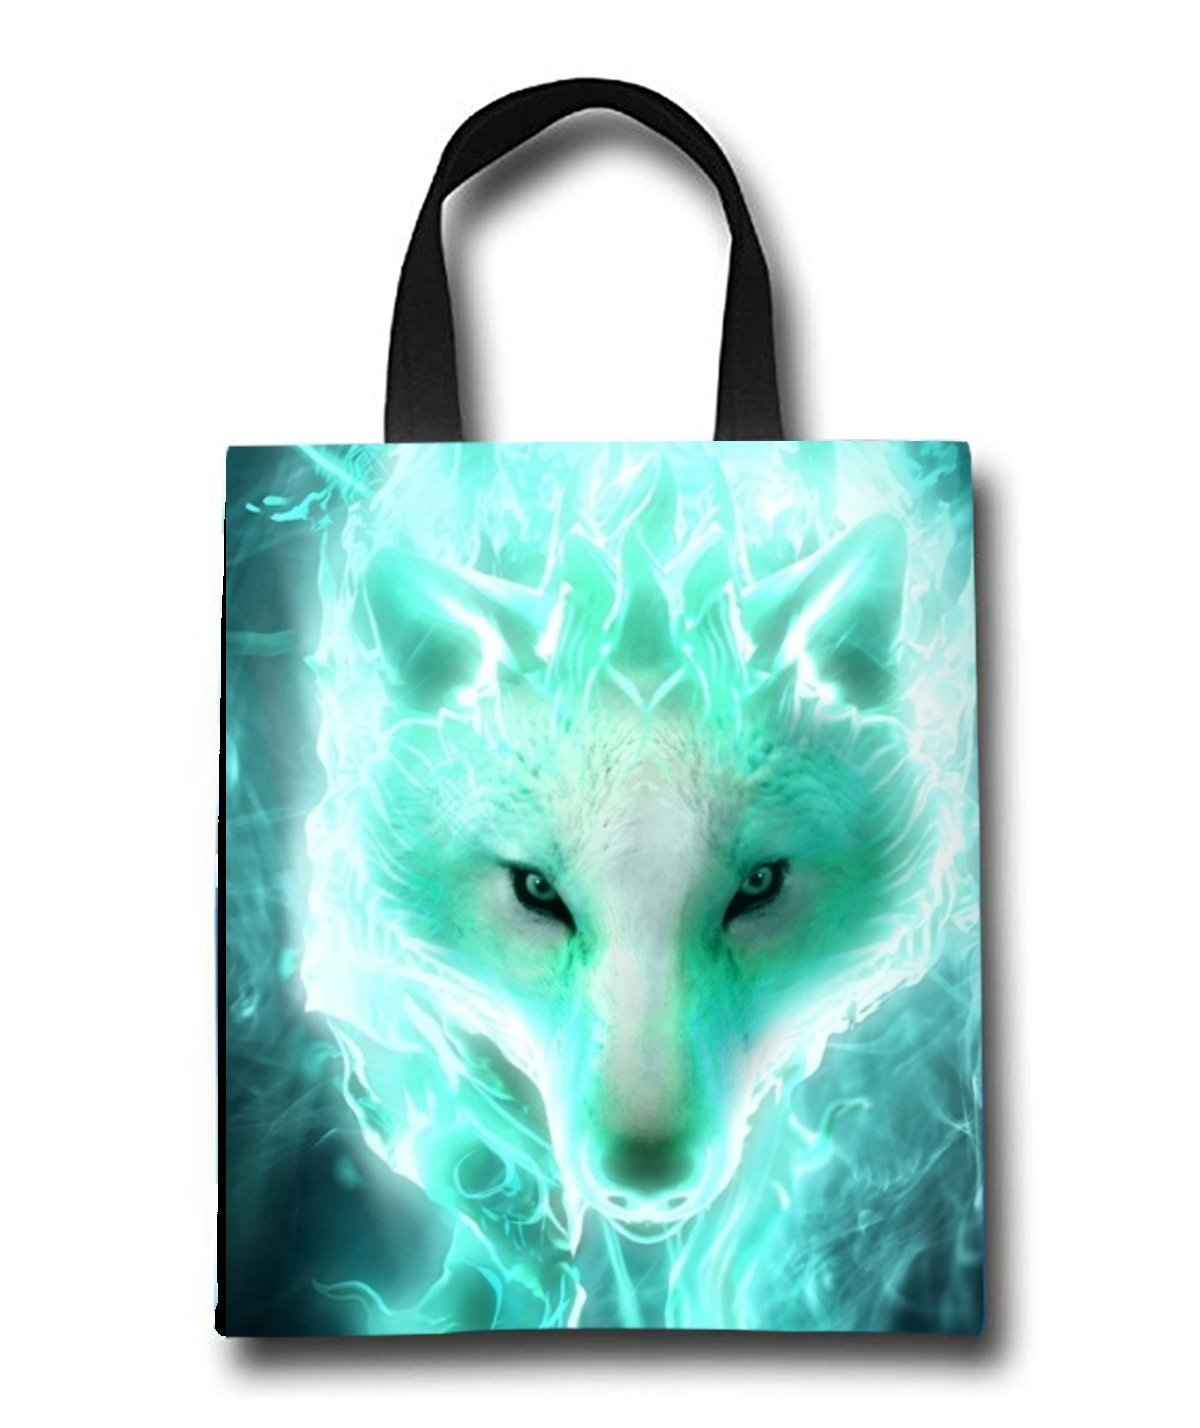 White Wolf Beach Tote Bag - Toy Tote Bag - Large Lightweight Market, Grocery & Picnic